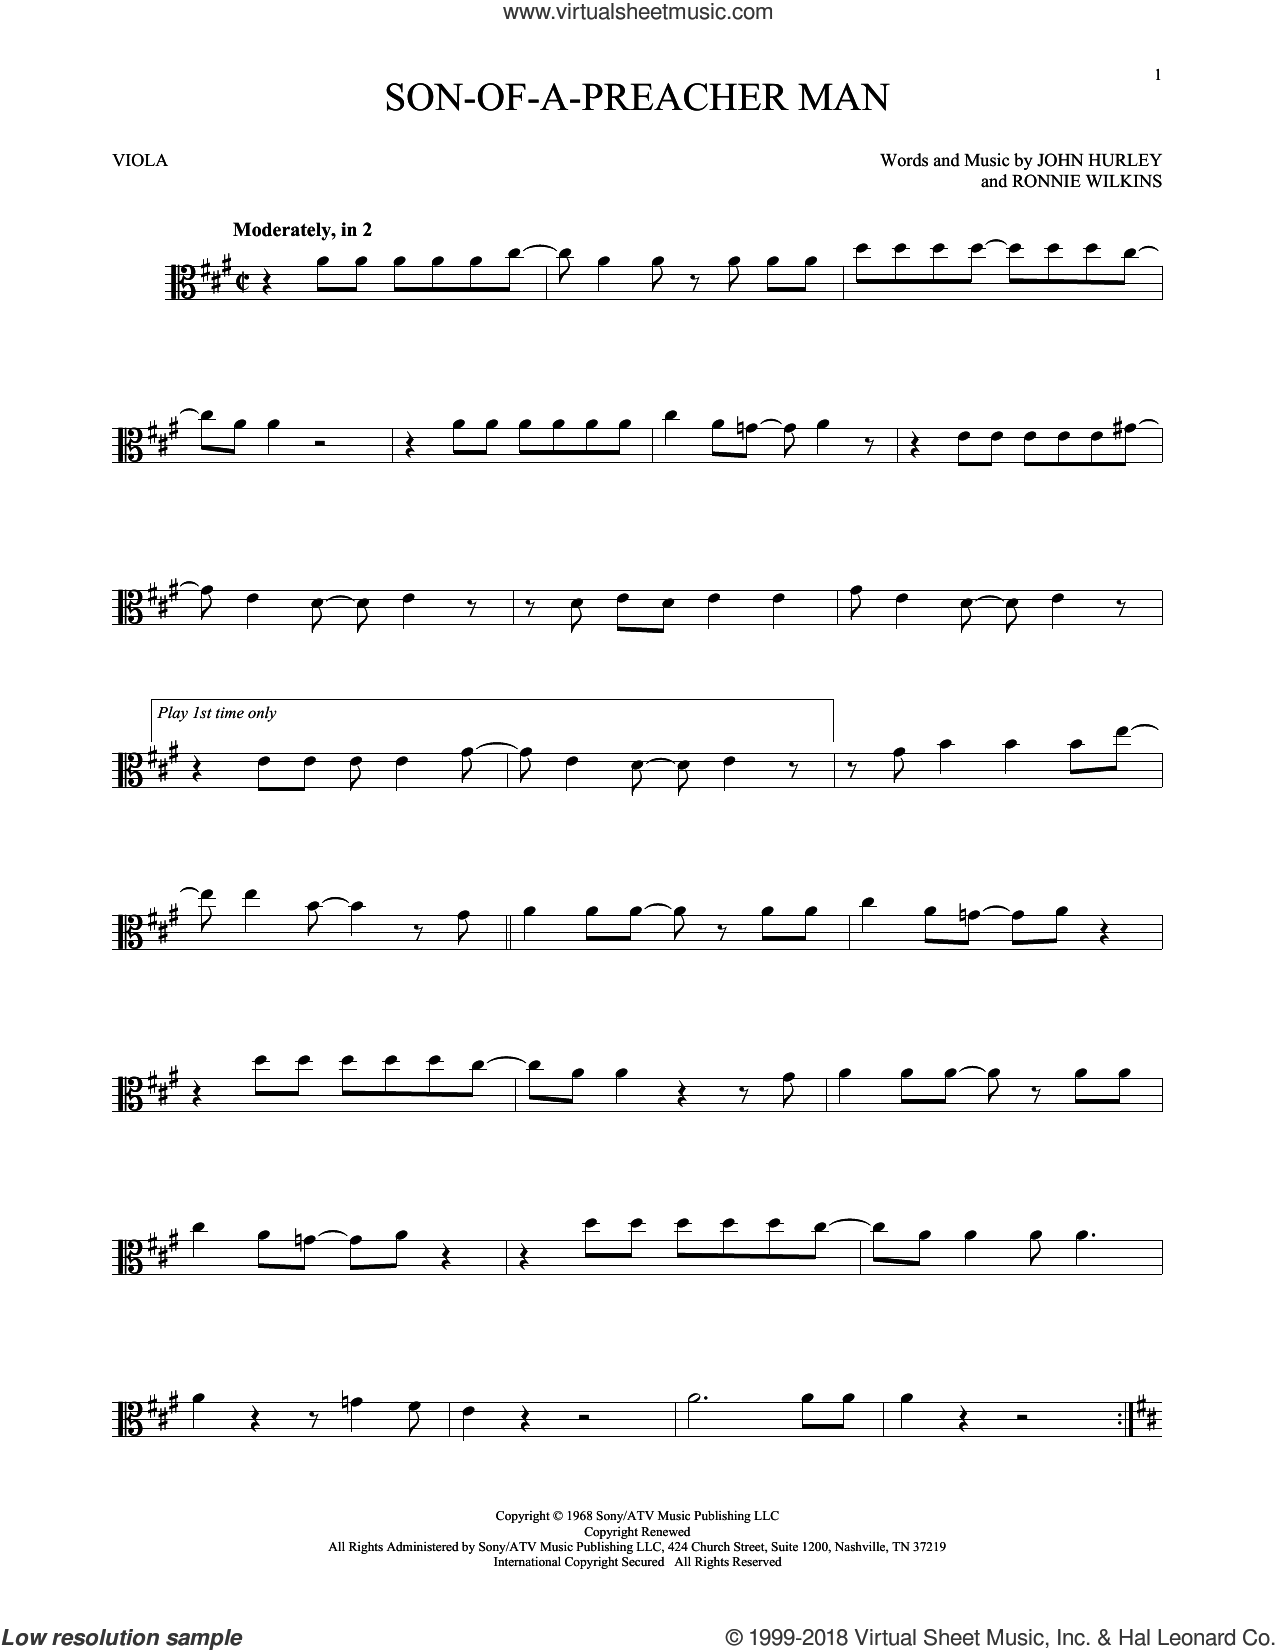 Son-Of-A-Preacher Man sheet music for viola solo by Dusty Springfield, John Hurley and Ronnie Wilkins, intermediate skill level